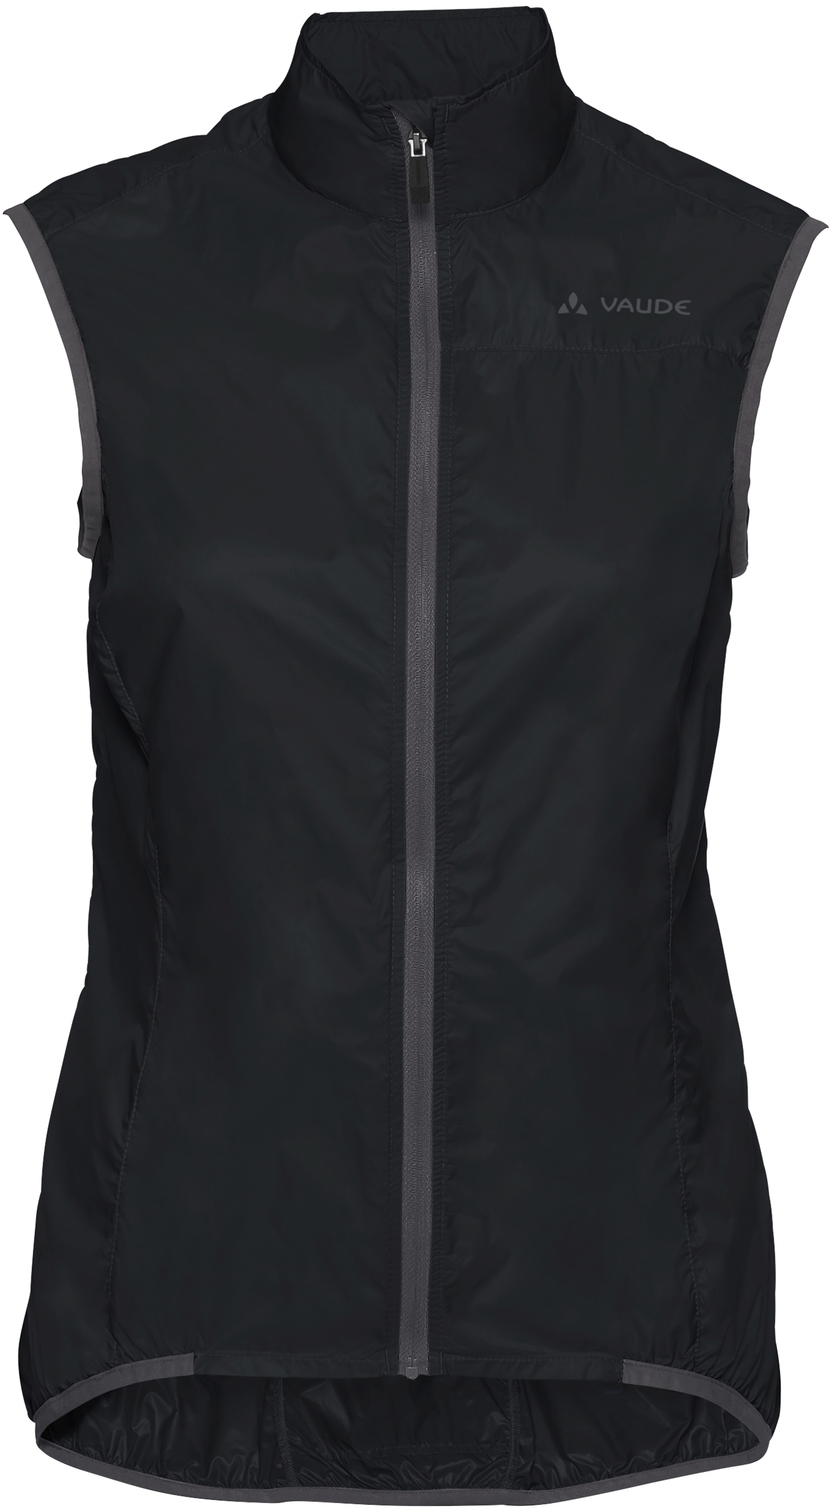 Vaude Women's Air Vest III | Vests